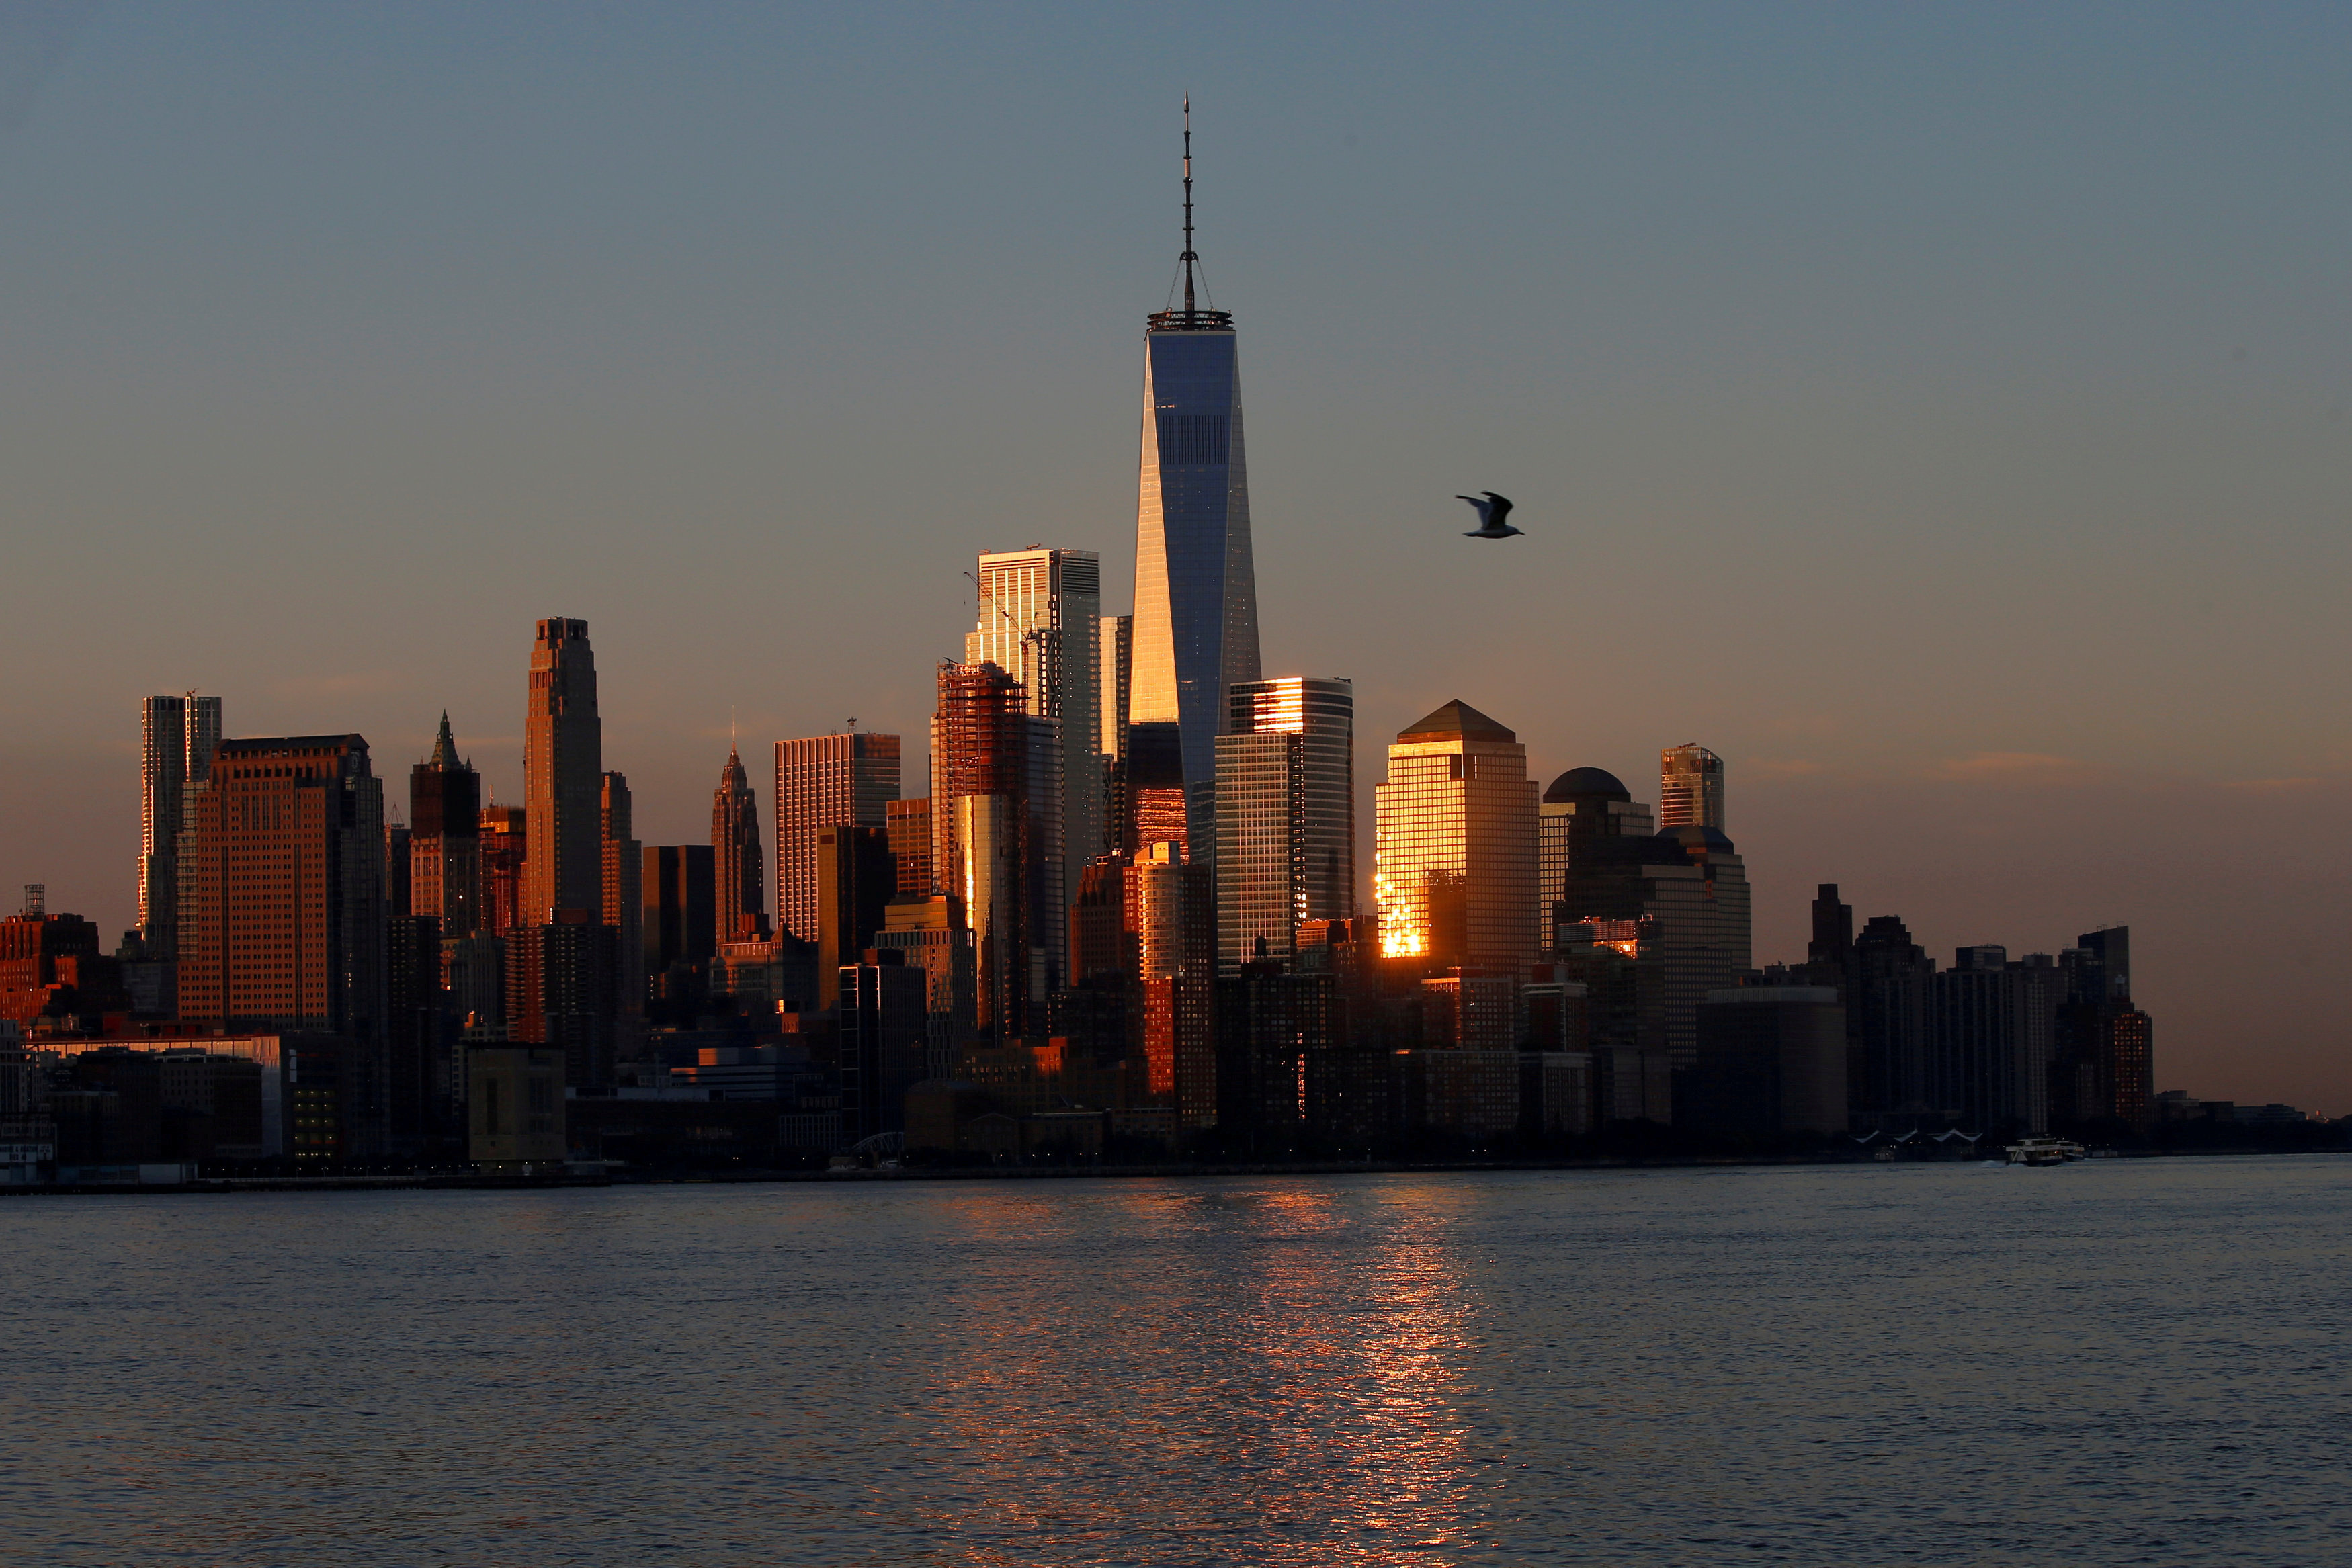 A view of the One World Trade Centre tower and the lower Manhattan skyline of New York City at sunrise as seen from Hoboken, New Jersey, U.S., August 9, 2017. REUTERS/Mike Segar/File Photo